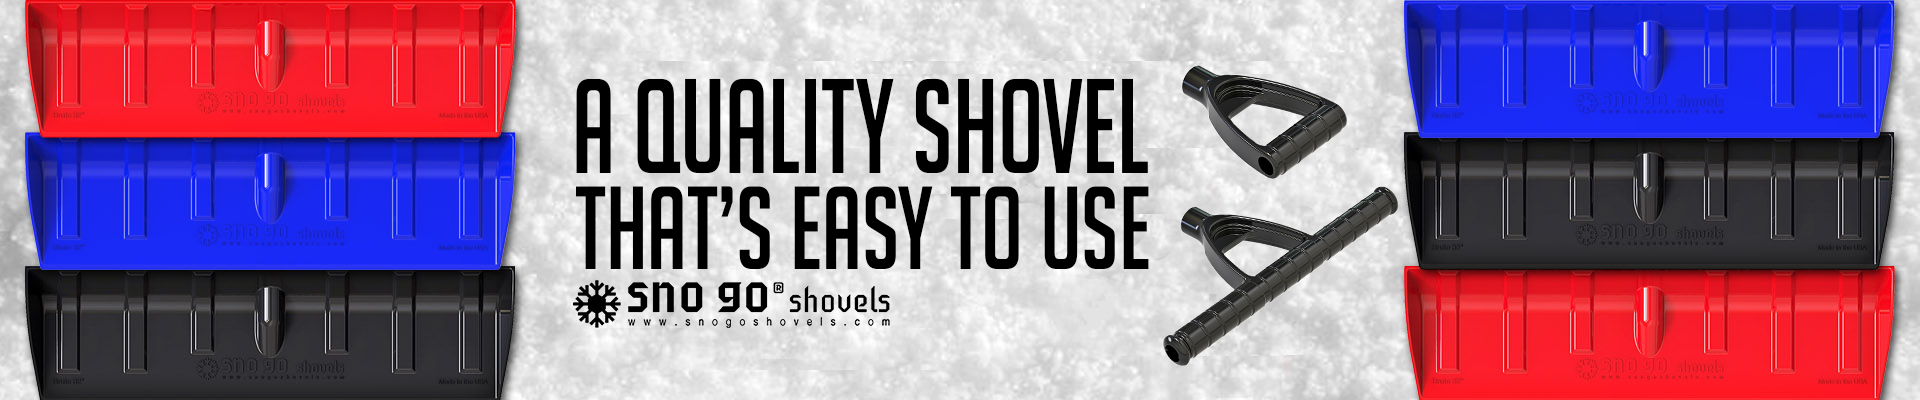 A Quality Shovel That's Easy To Use